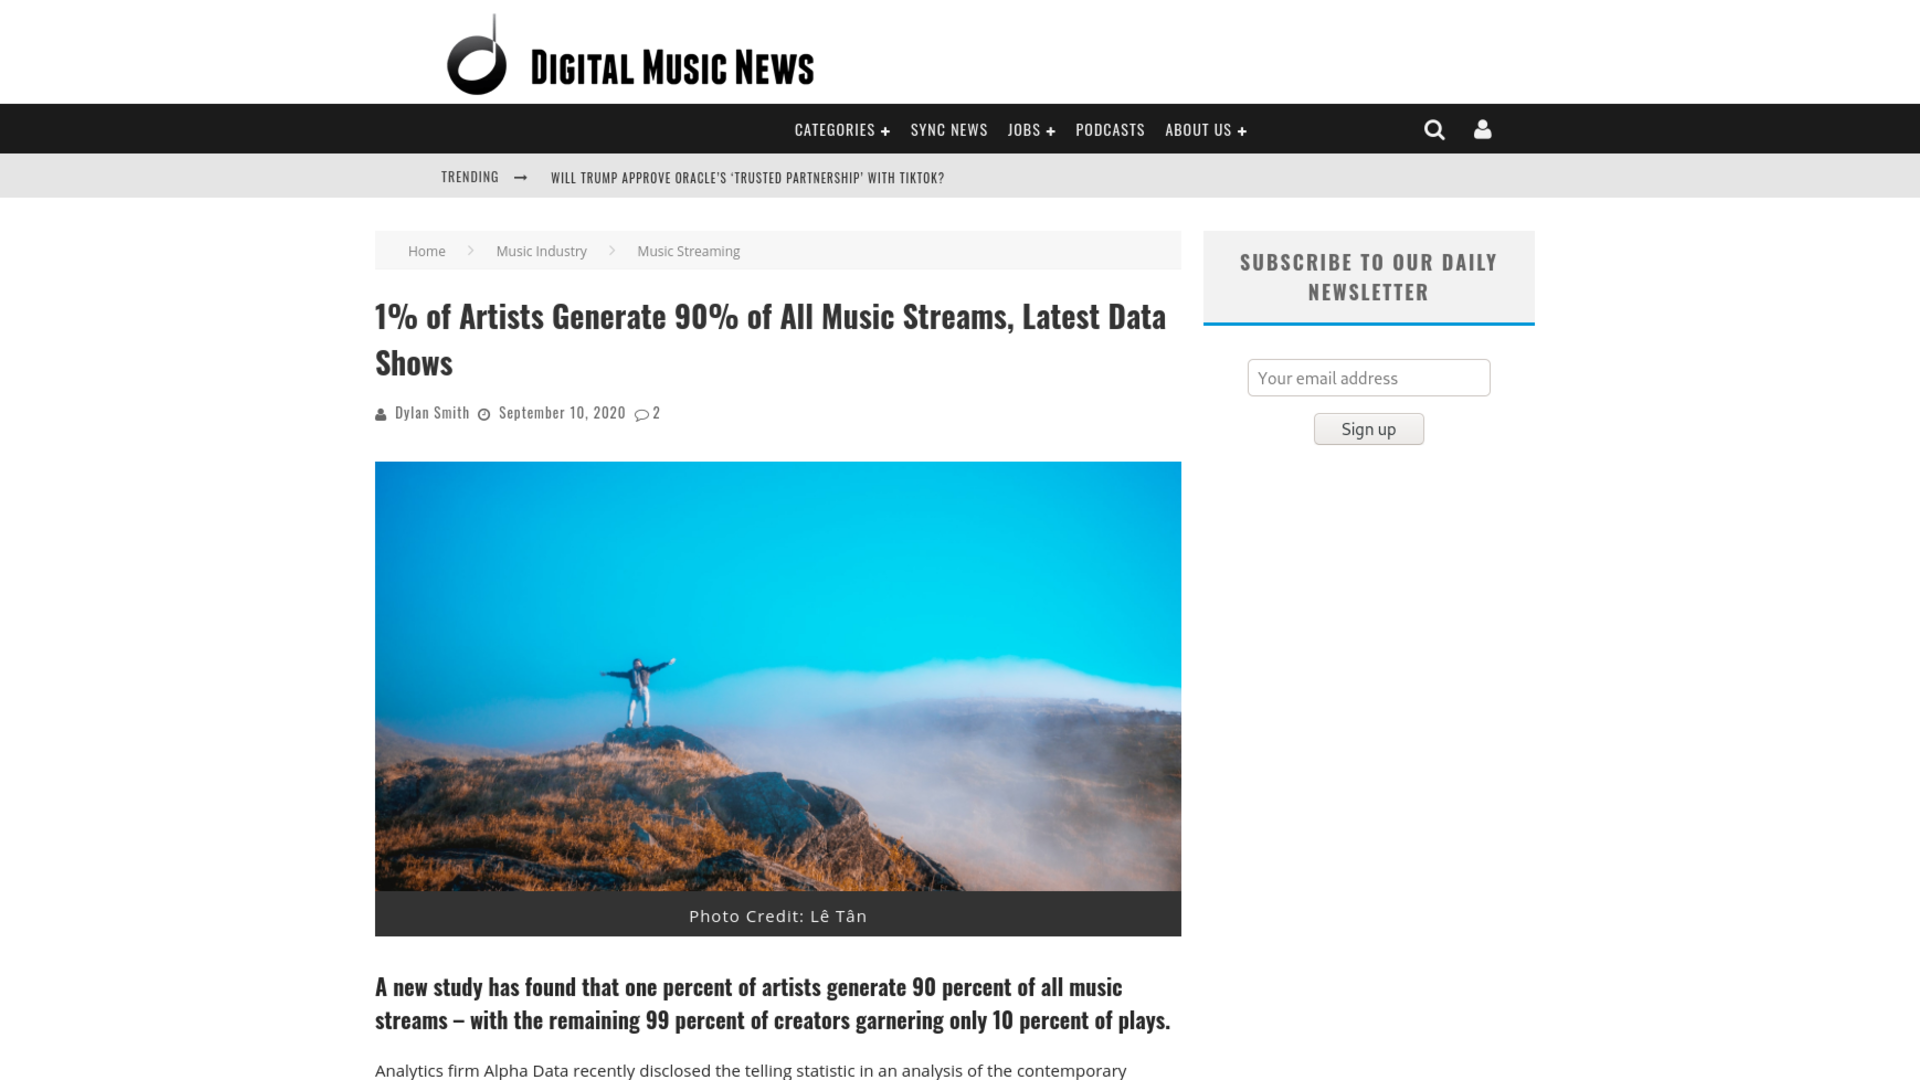 Fairness Rocks News 1% of Artists Generate 90% of All Music Streams, Latest Data Shows